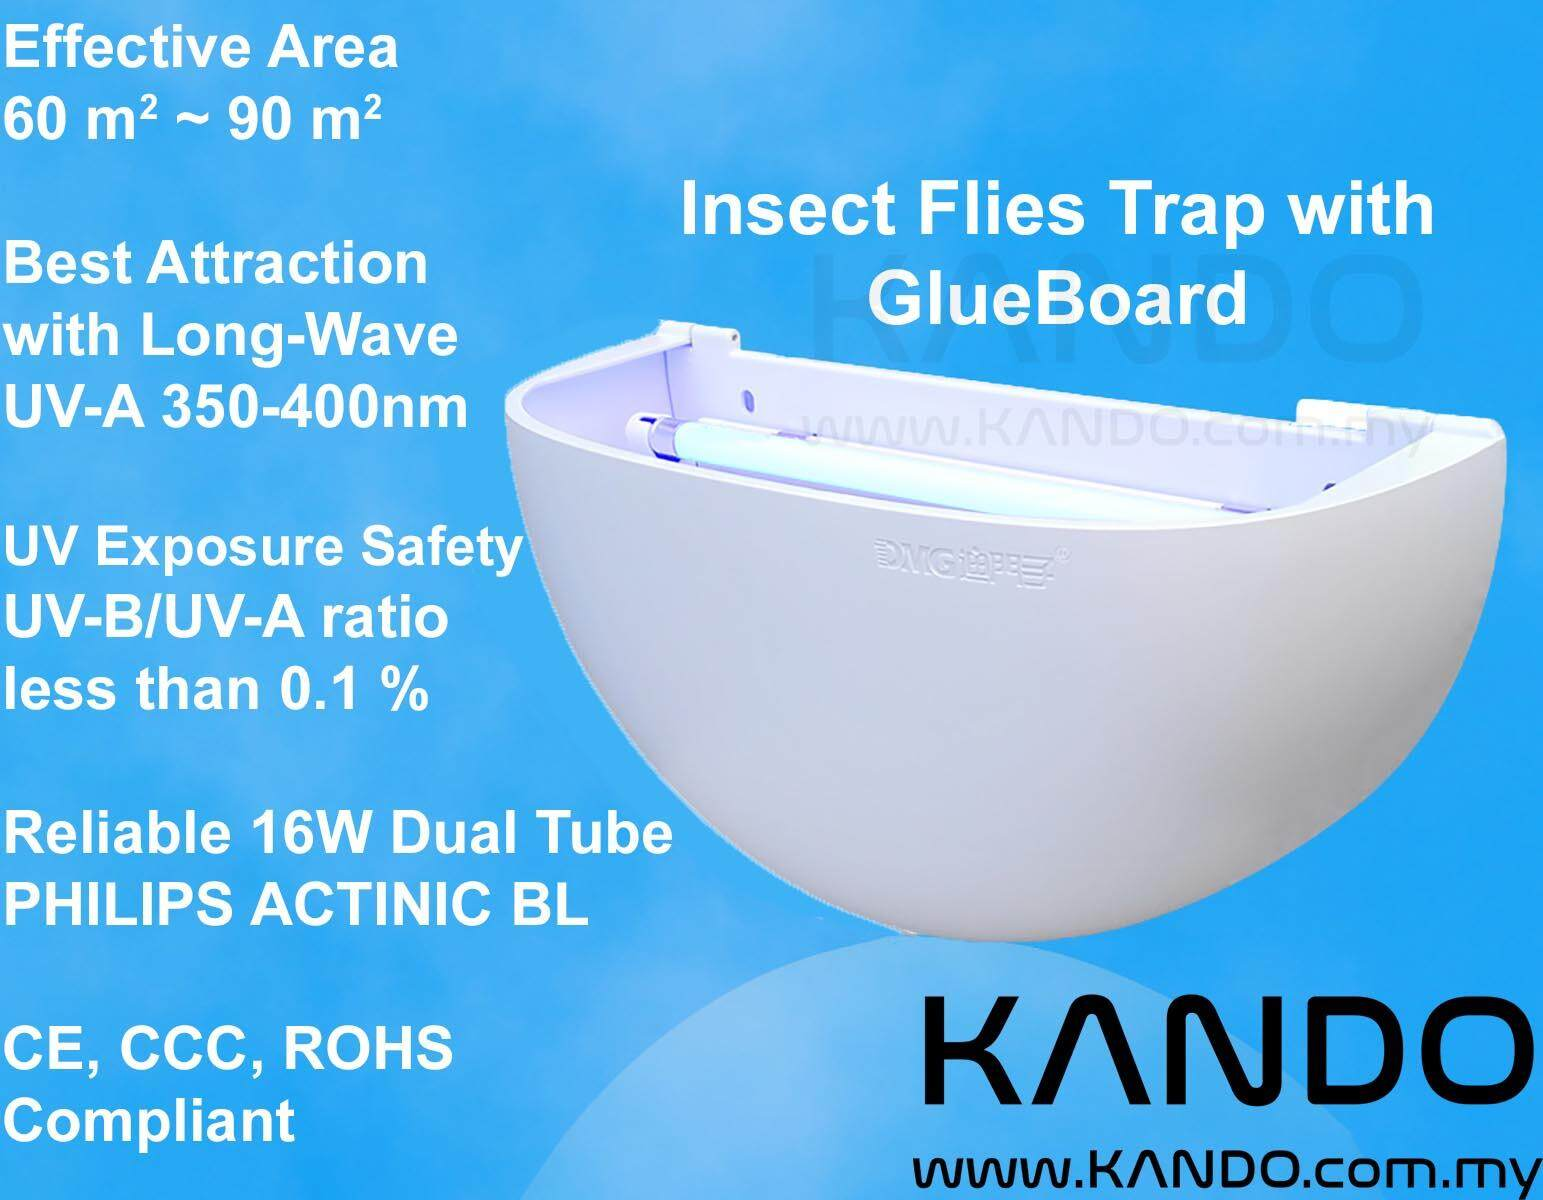 Insect Flies Trap with GlueBoard UV Light 16W Philips Actinic BL Sticky Trap Insect Killer Fly Trap Insect Trap Philips Actinic BL TL8W